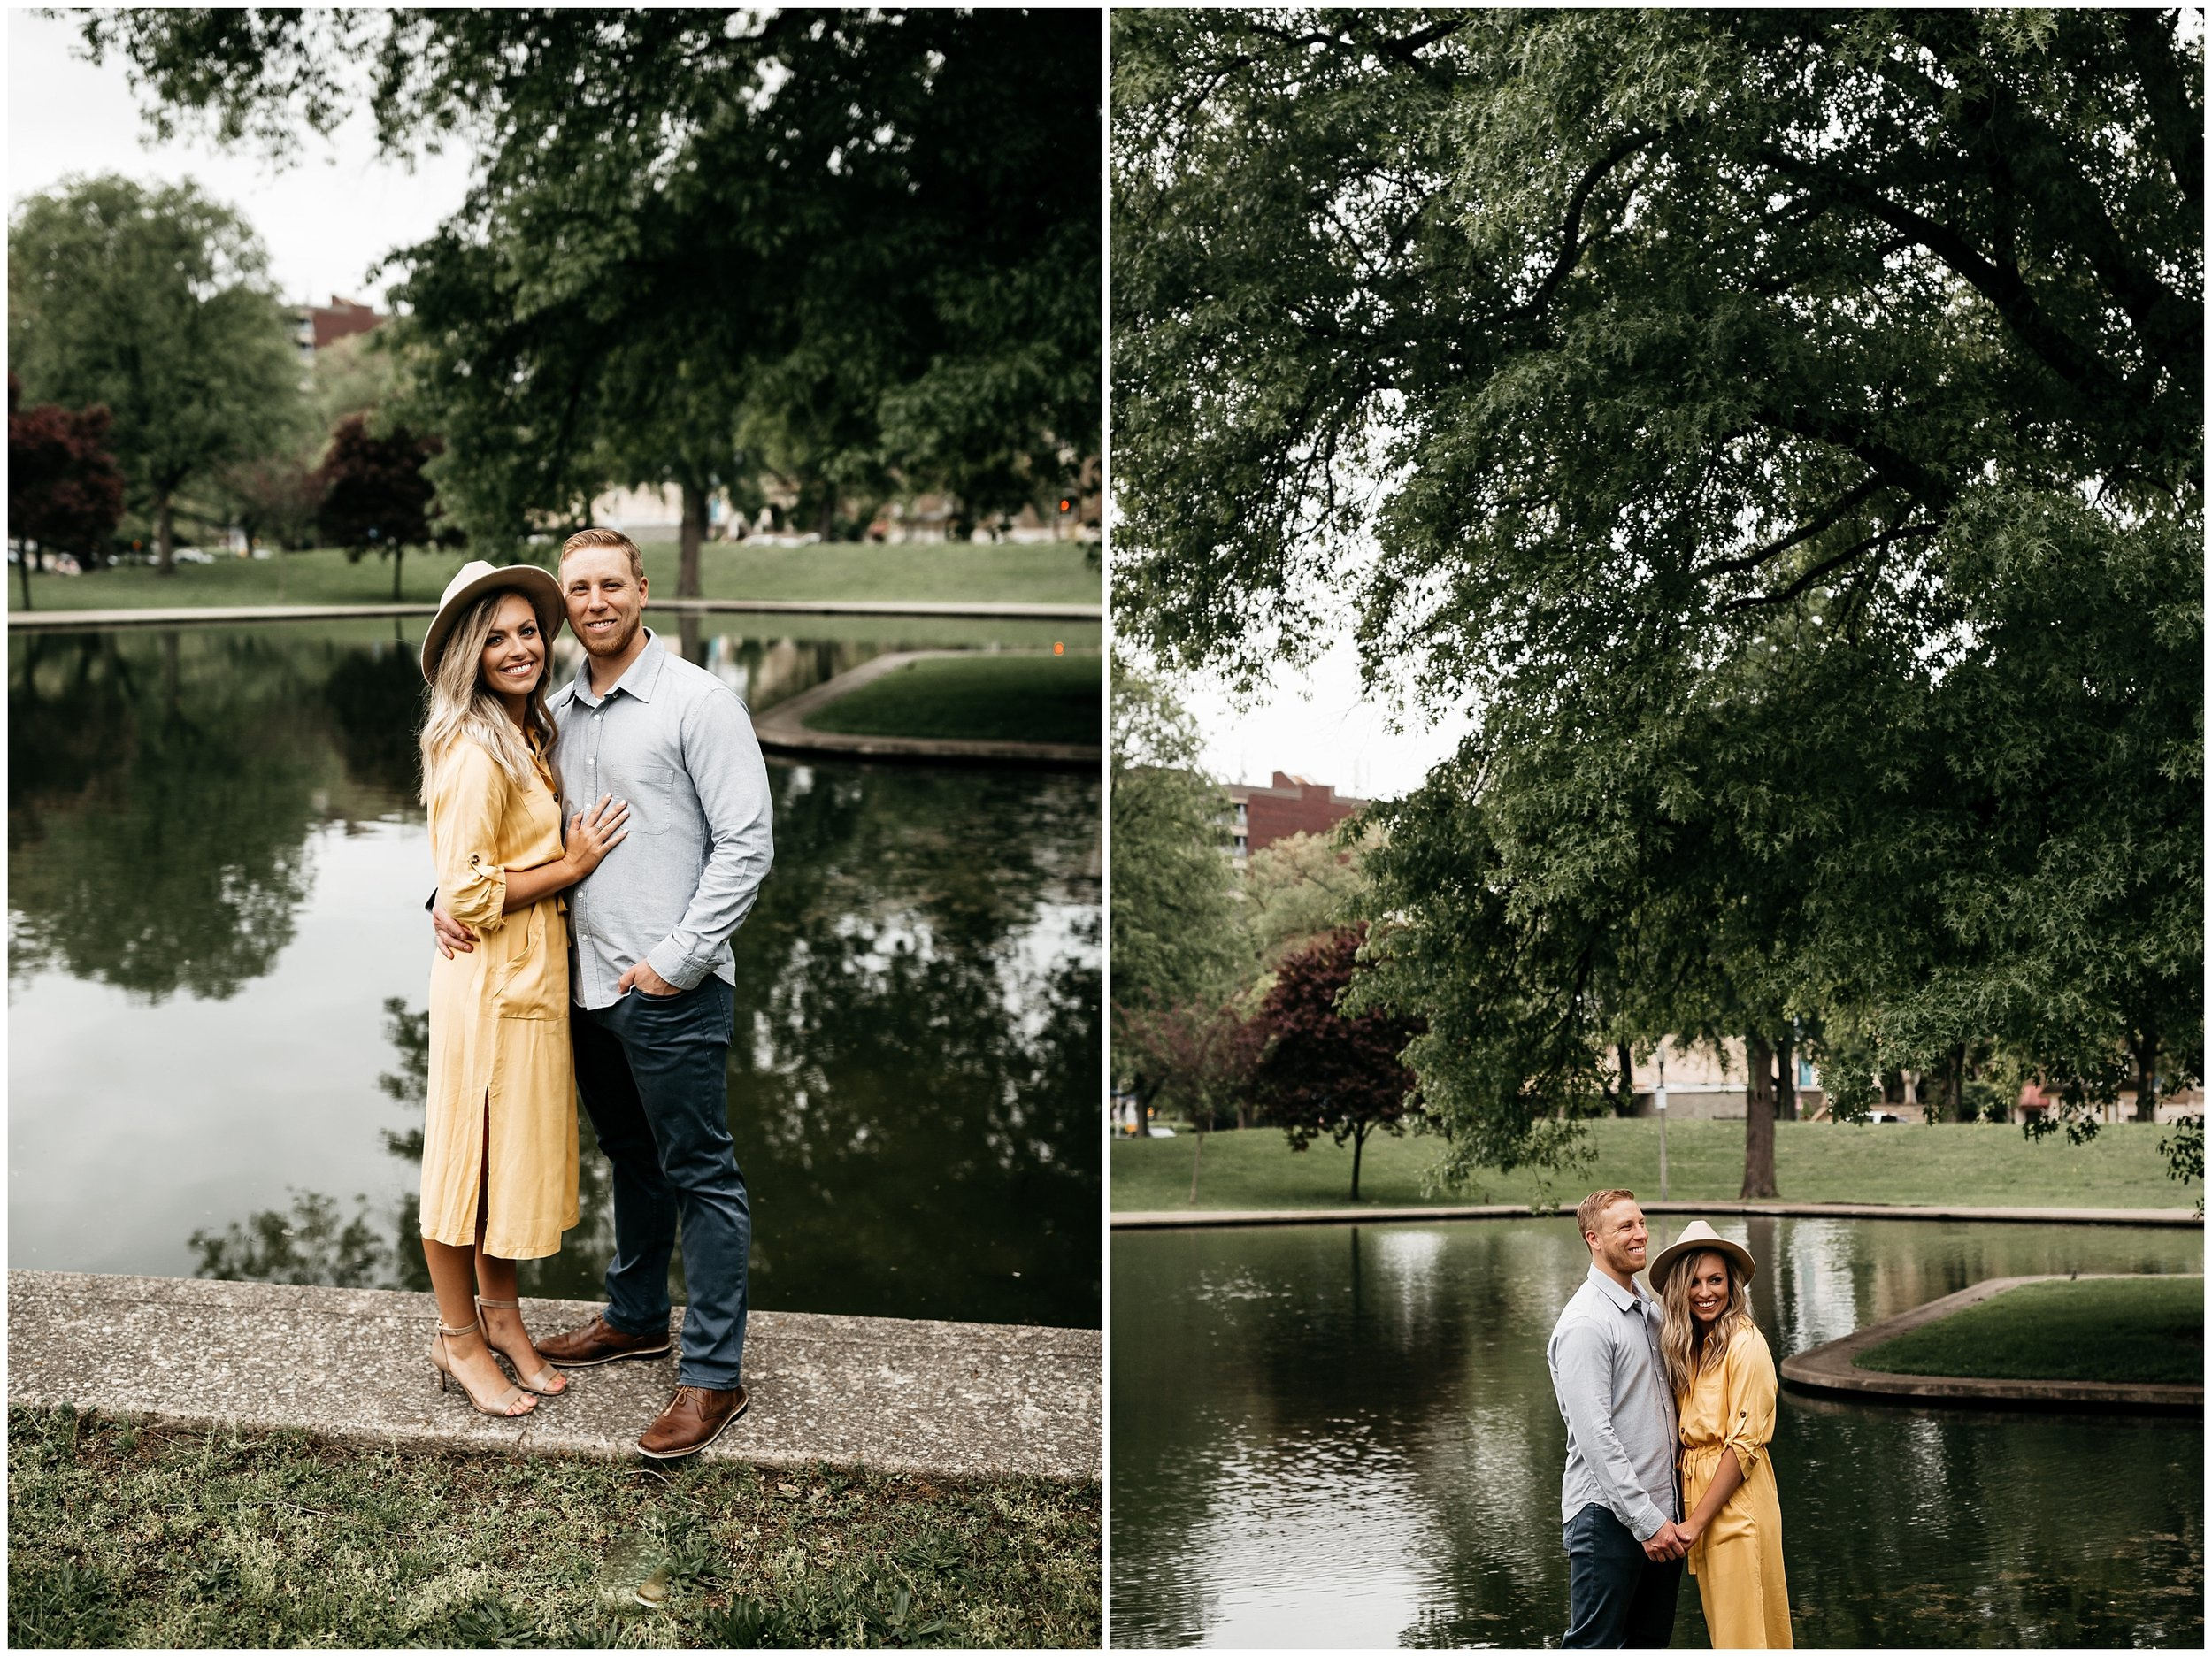 pittsburghengagementphotos_0002.jpg